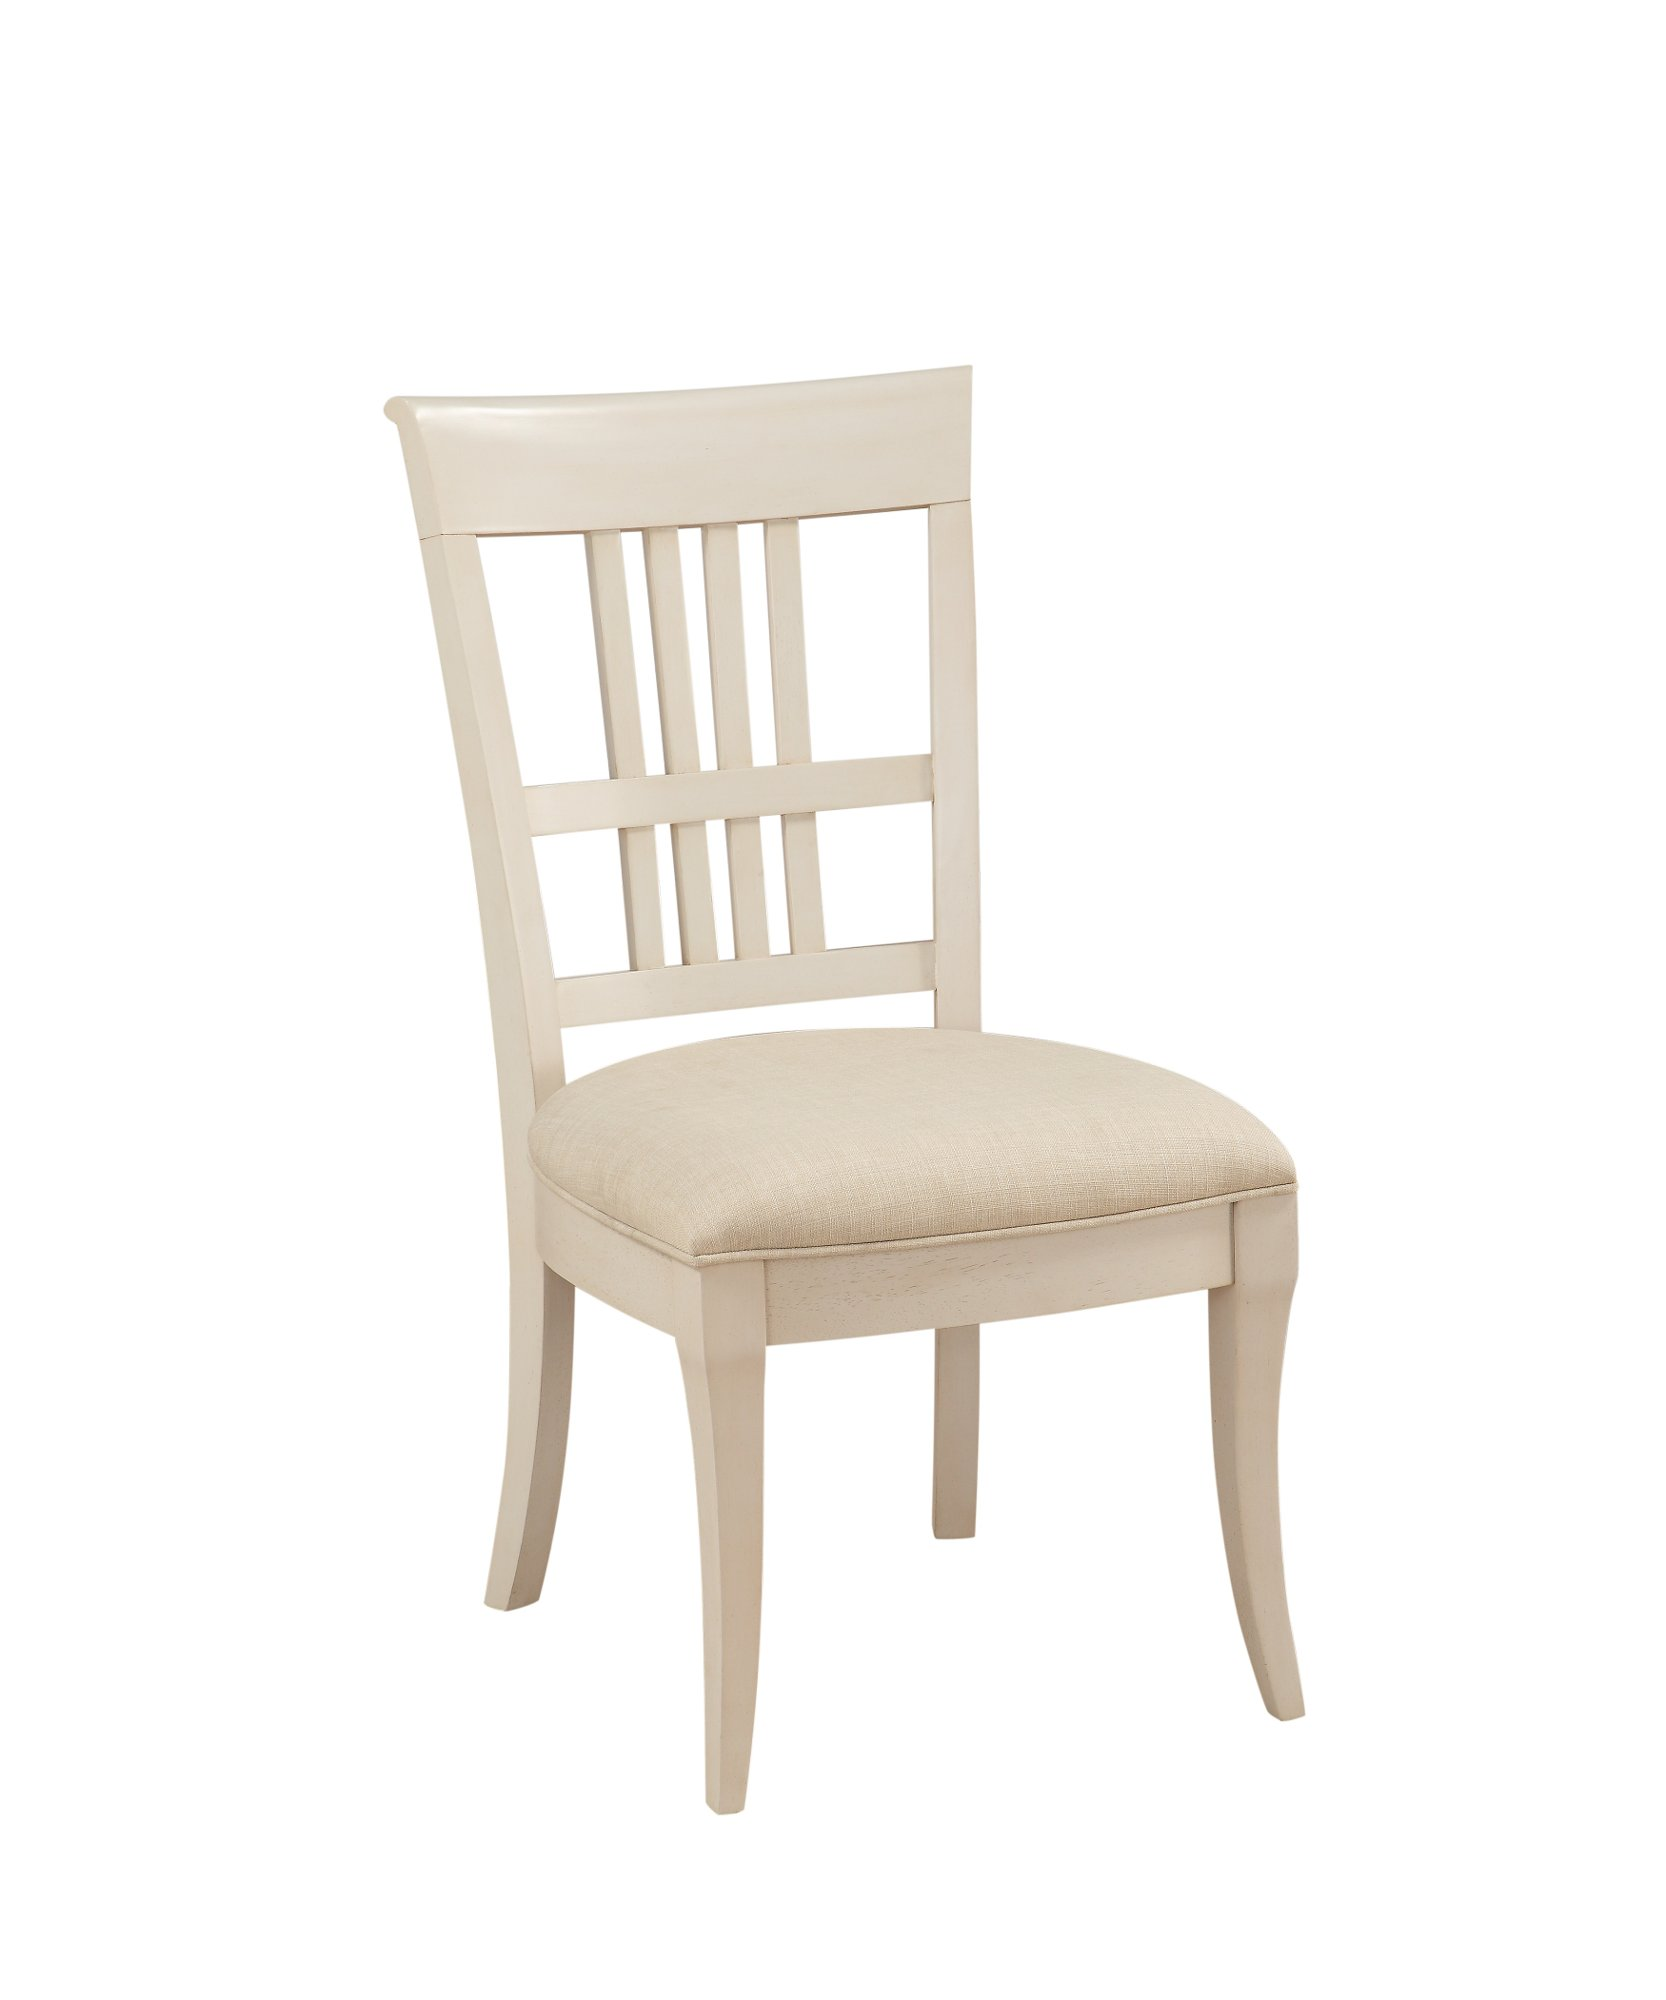 white washed oak dining table and chairs folding chair joints whitewash 6 piece corner set monterey